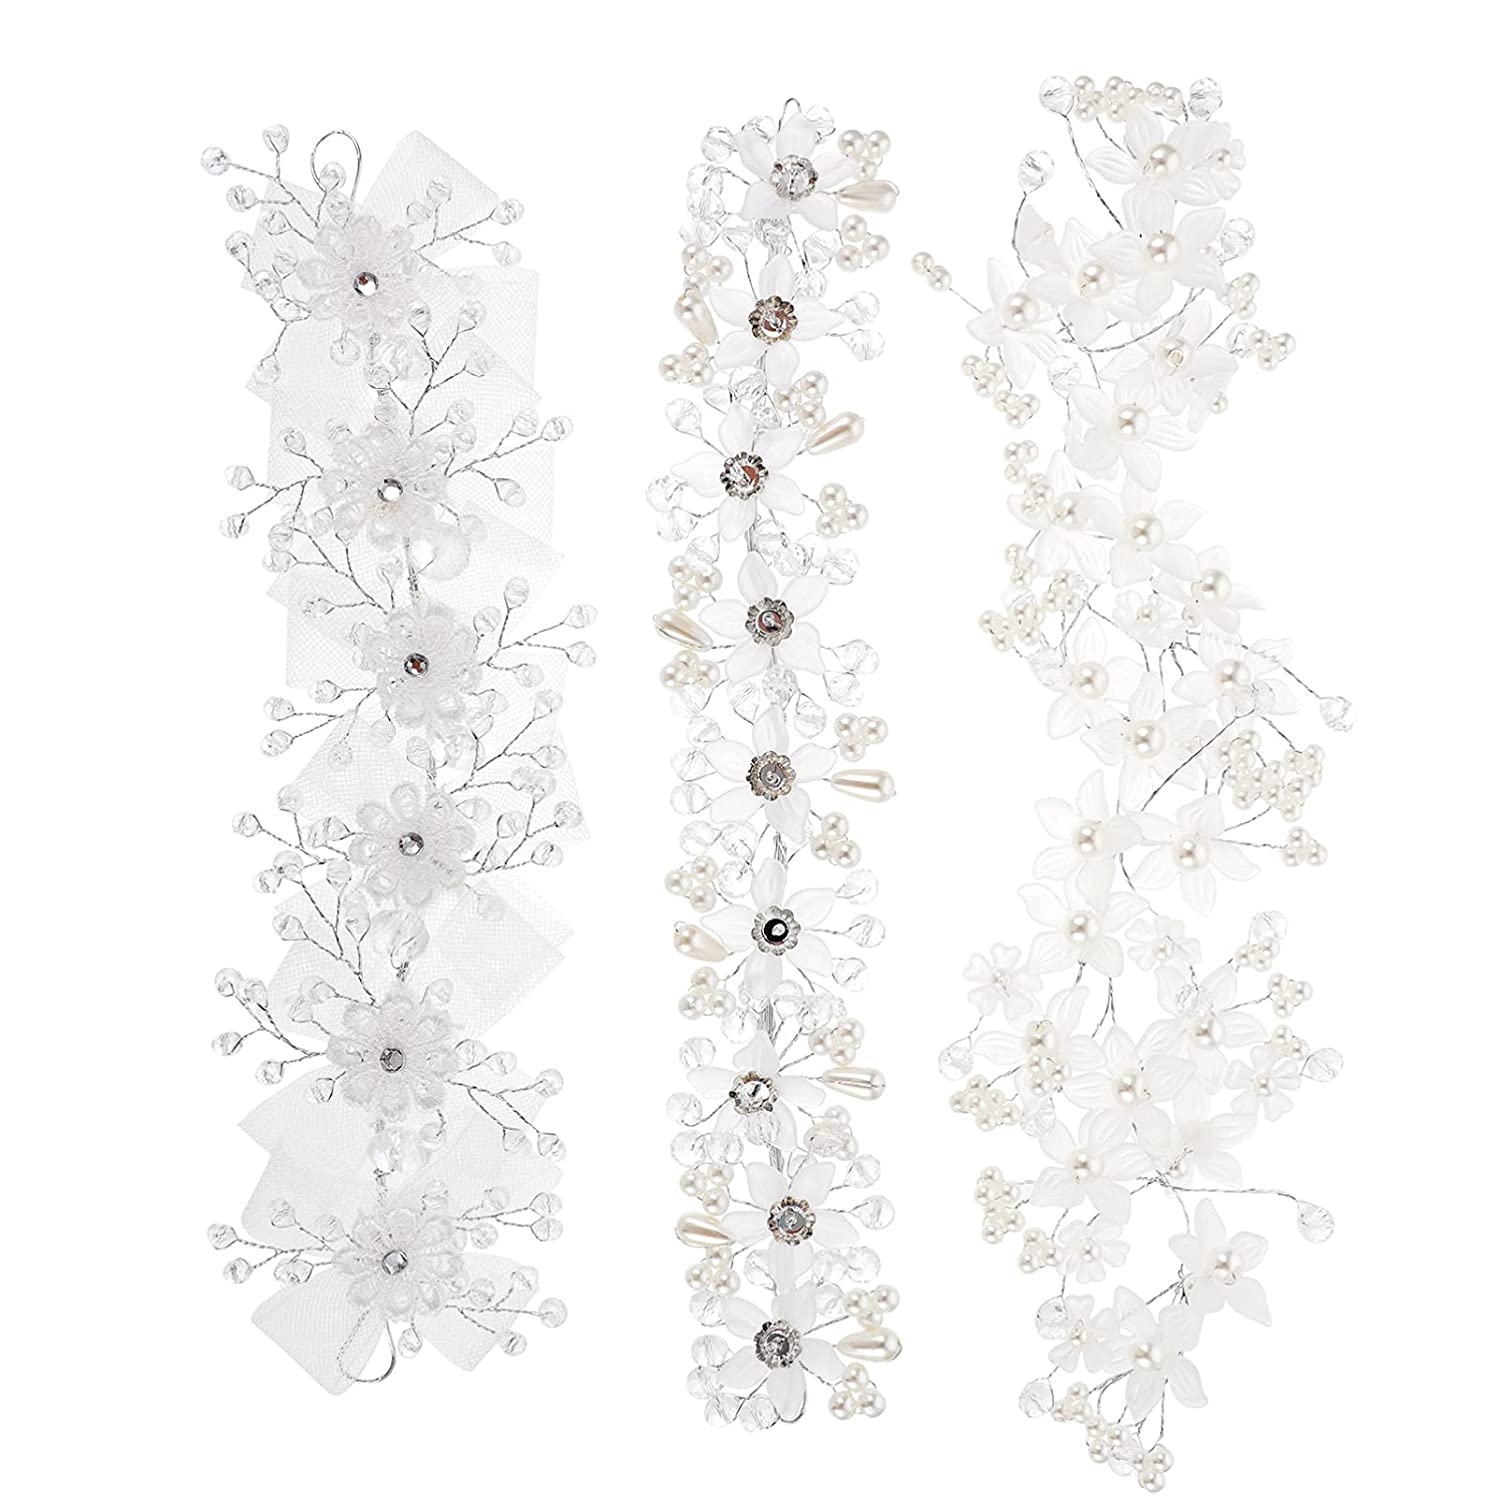 FRCOLOR 3Pcs Wedding Hair Clips Set, Pearl Rhinestones Bride Headpiece Flower Shape With Lace Bownot Decor Head Bands for Little Girls